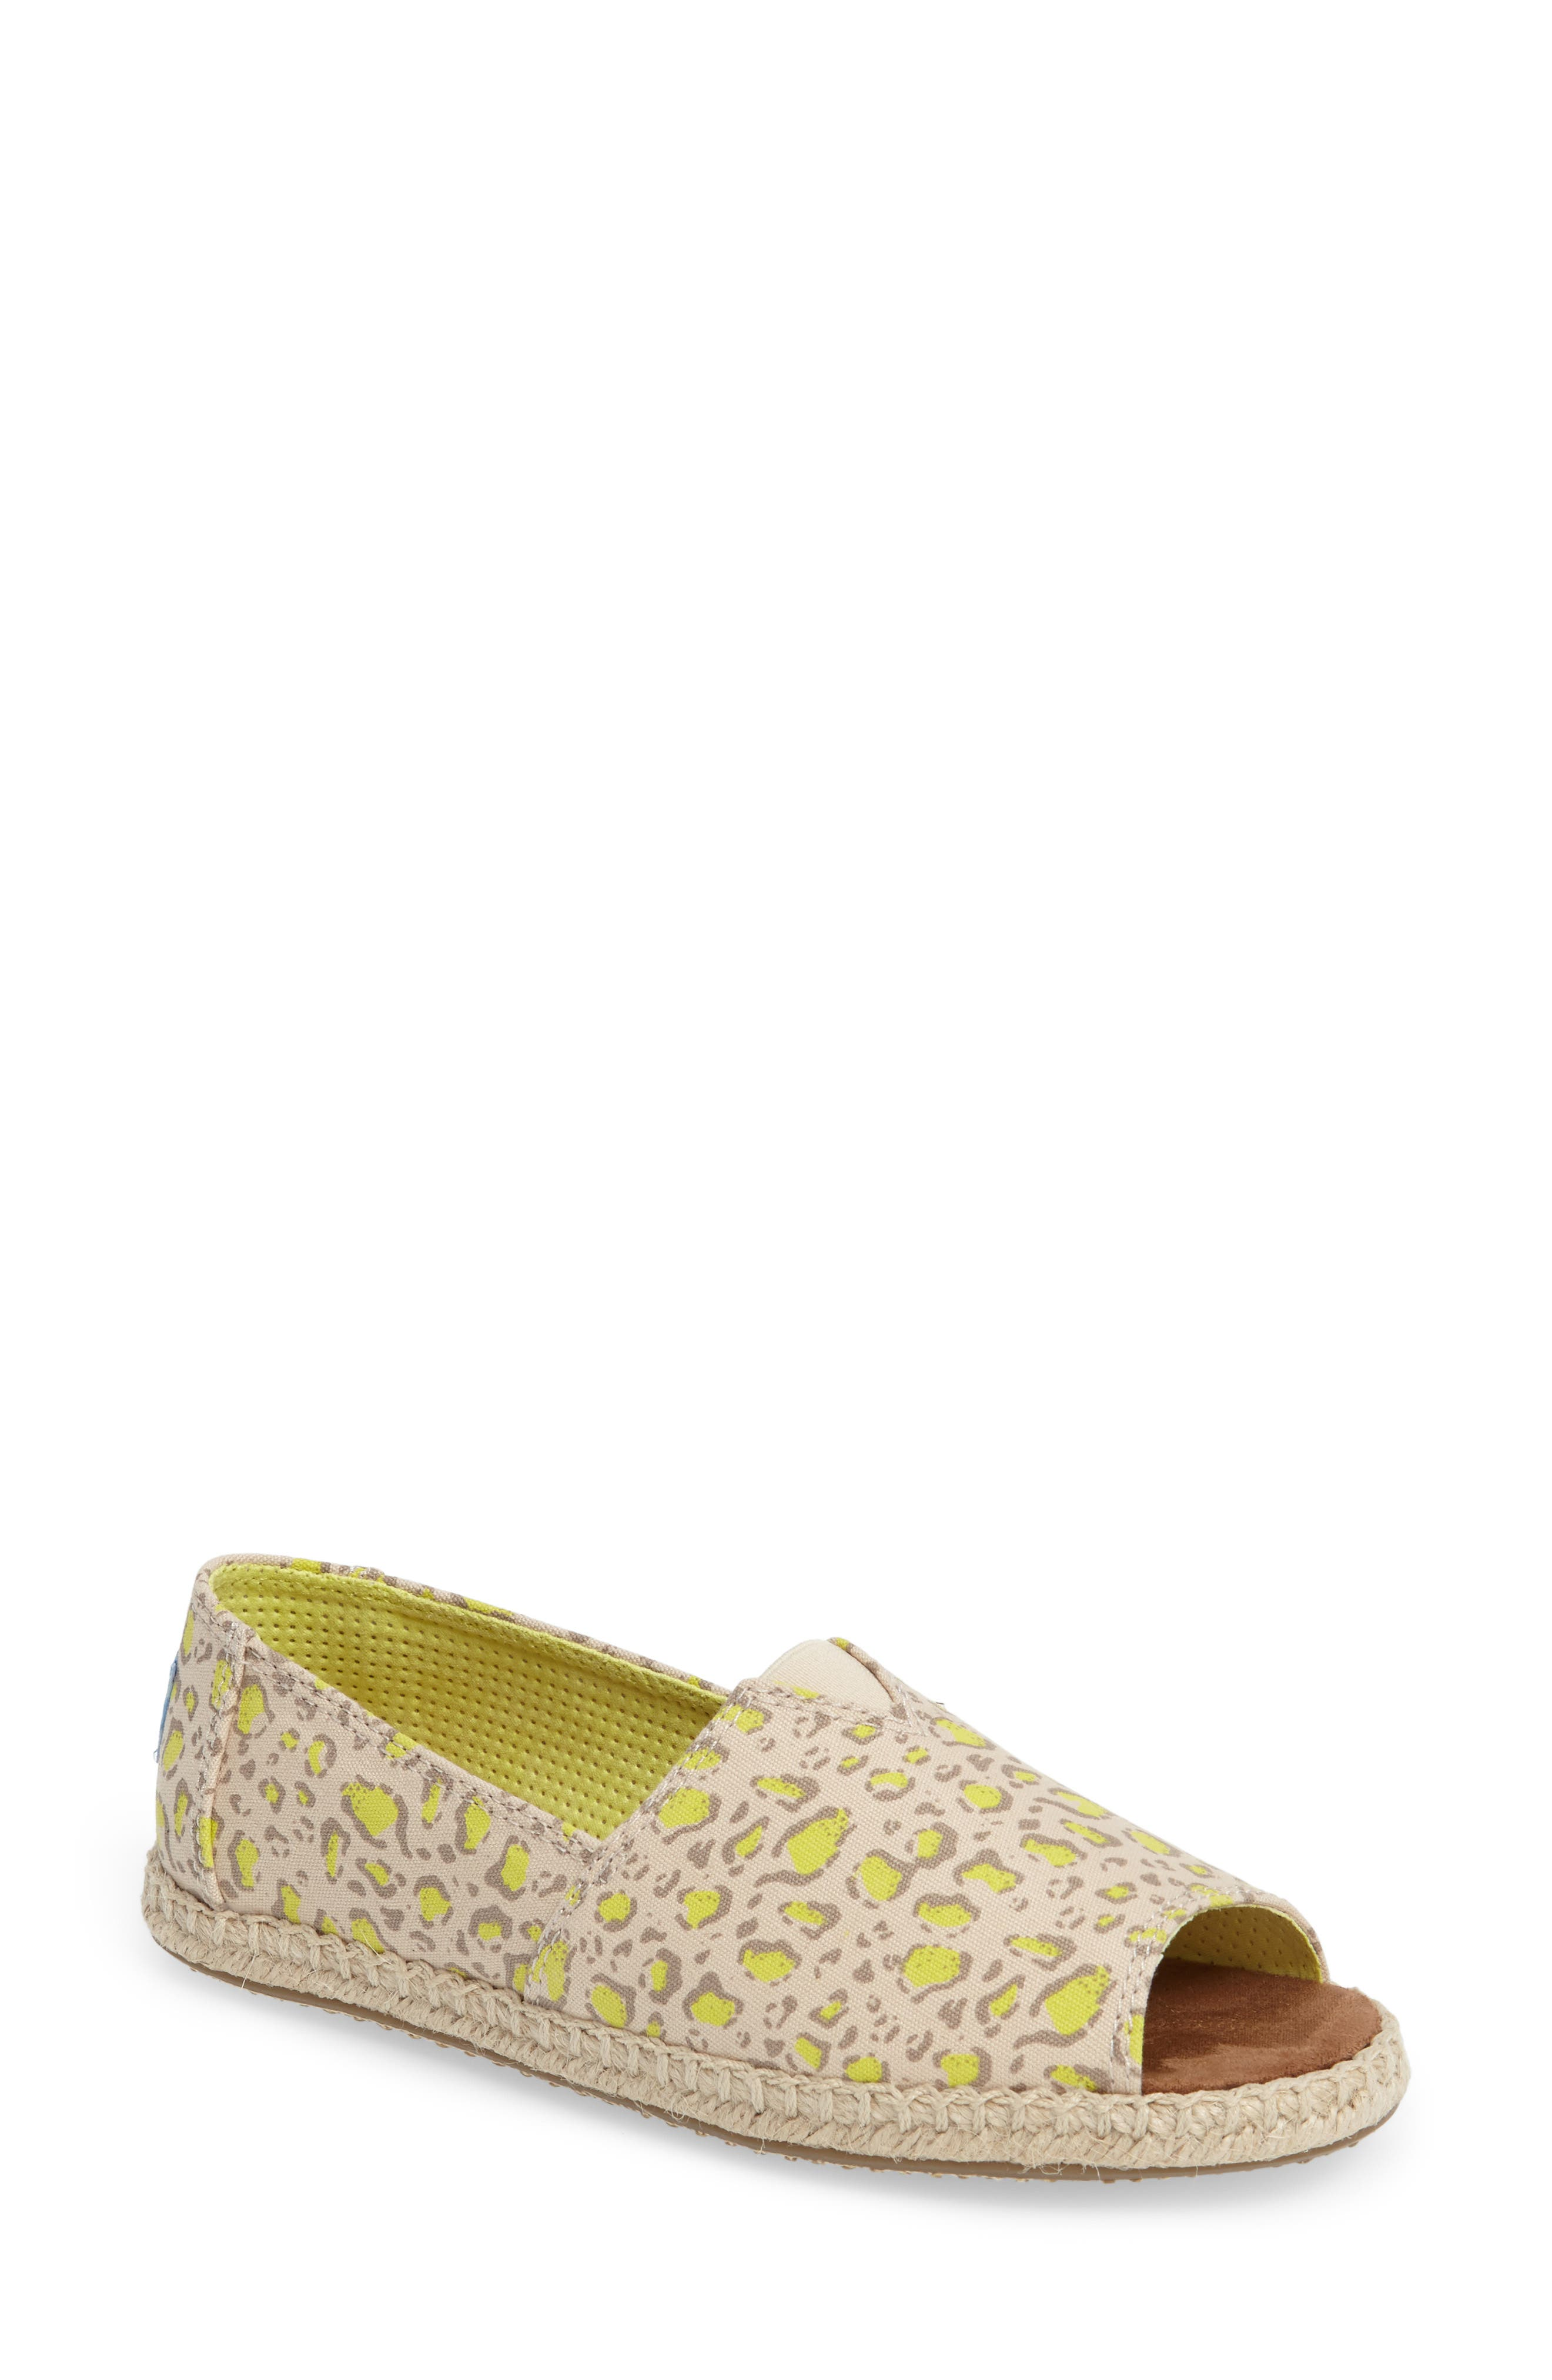 TOMS Alpargata Open-Toe Slip-On (Women)